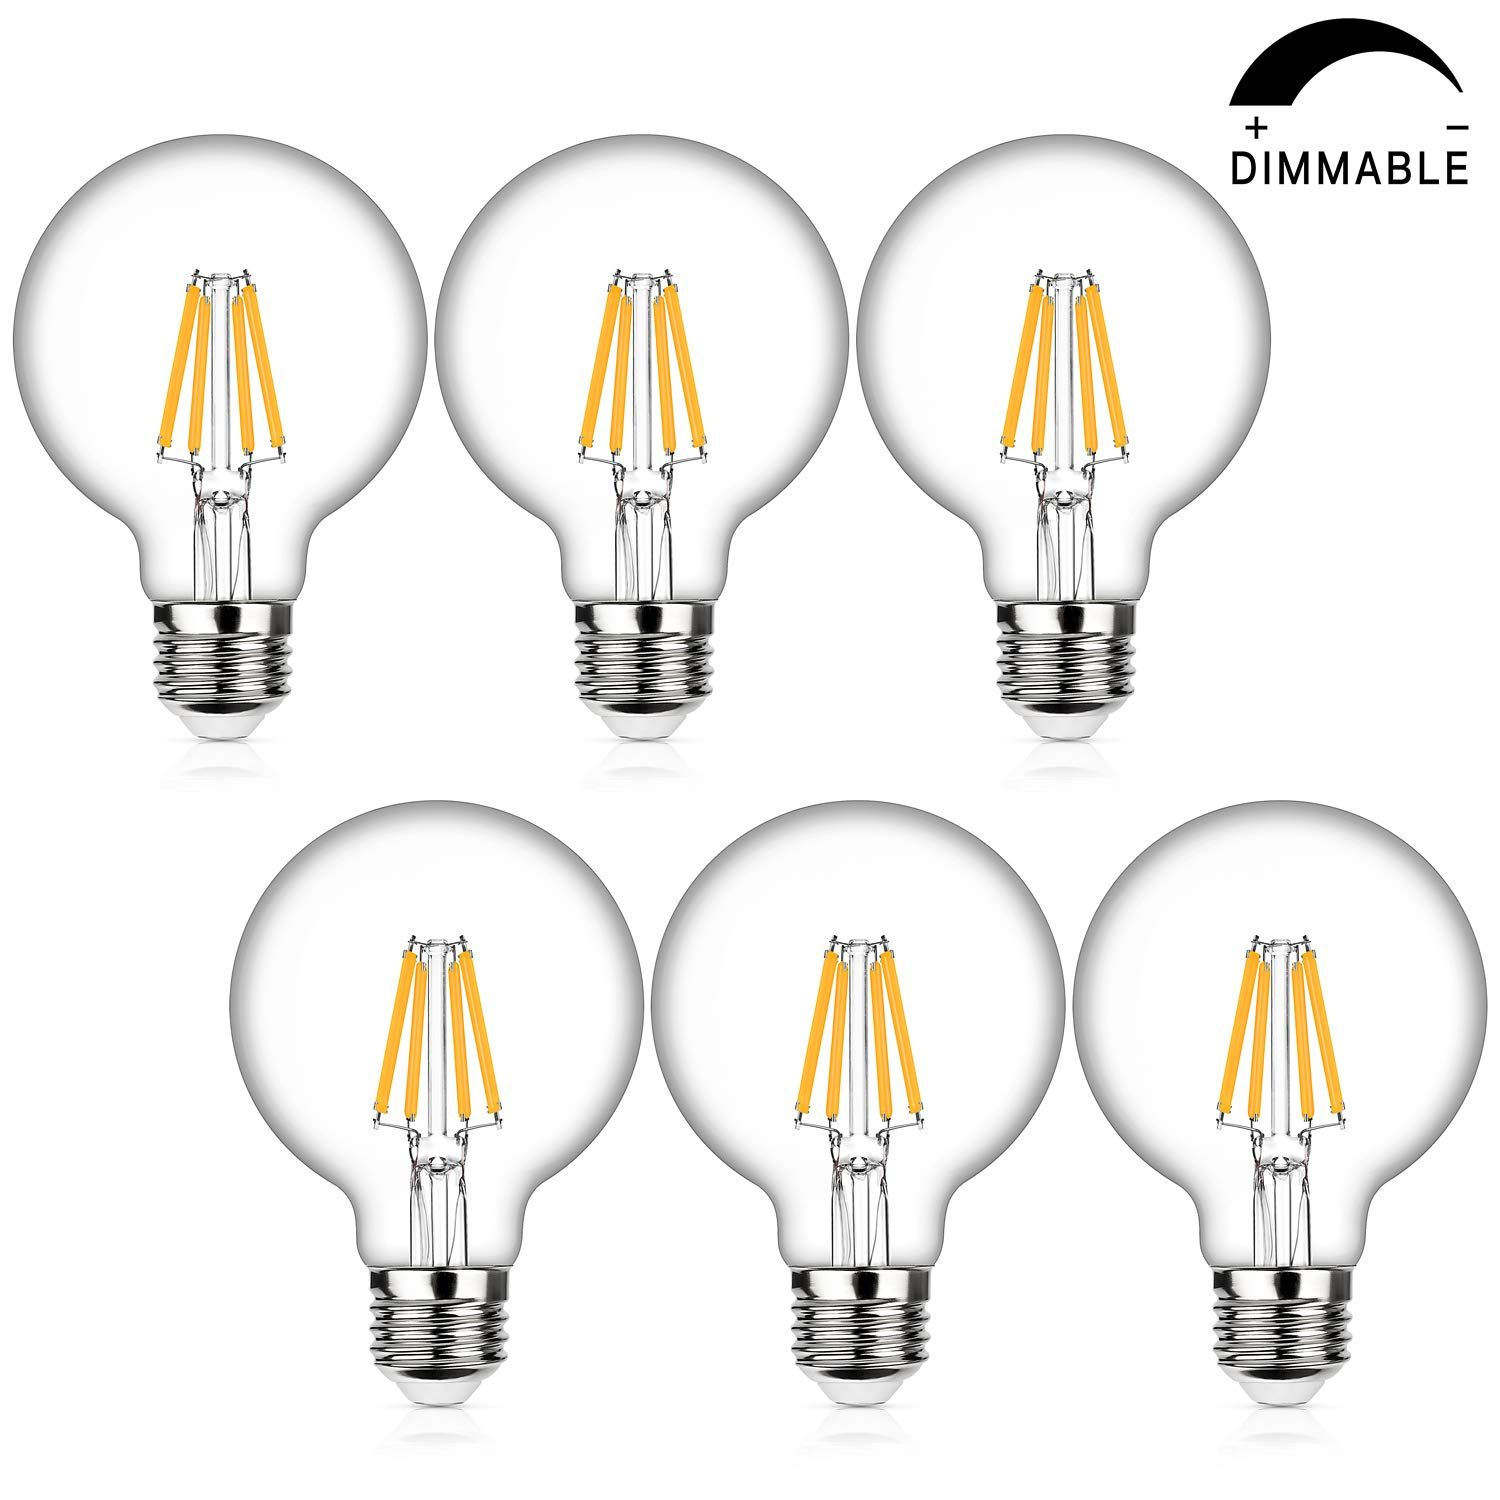 Led Globe G25 Dimmable Edison Light Bulbs 60w Equivalent